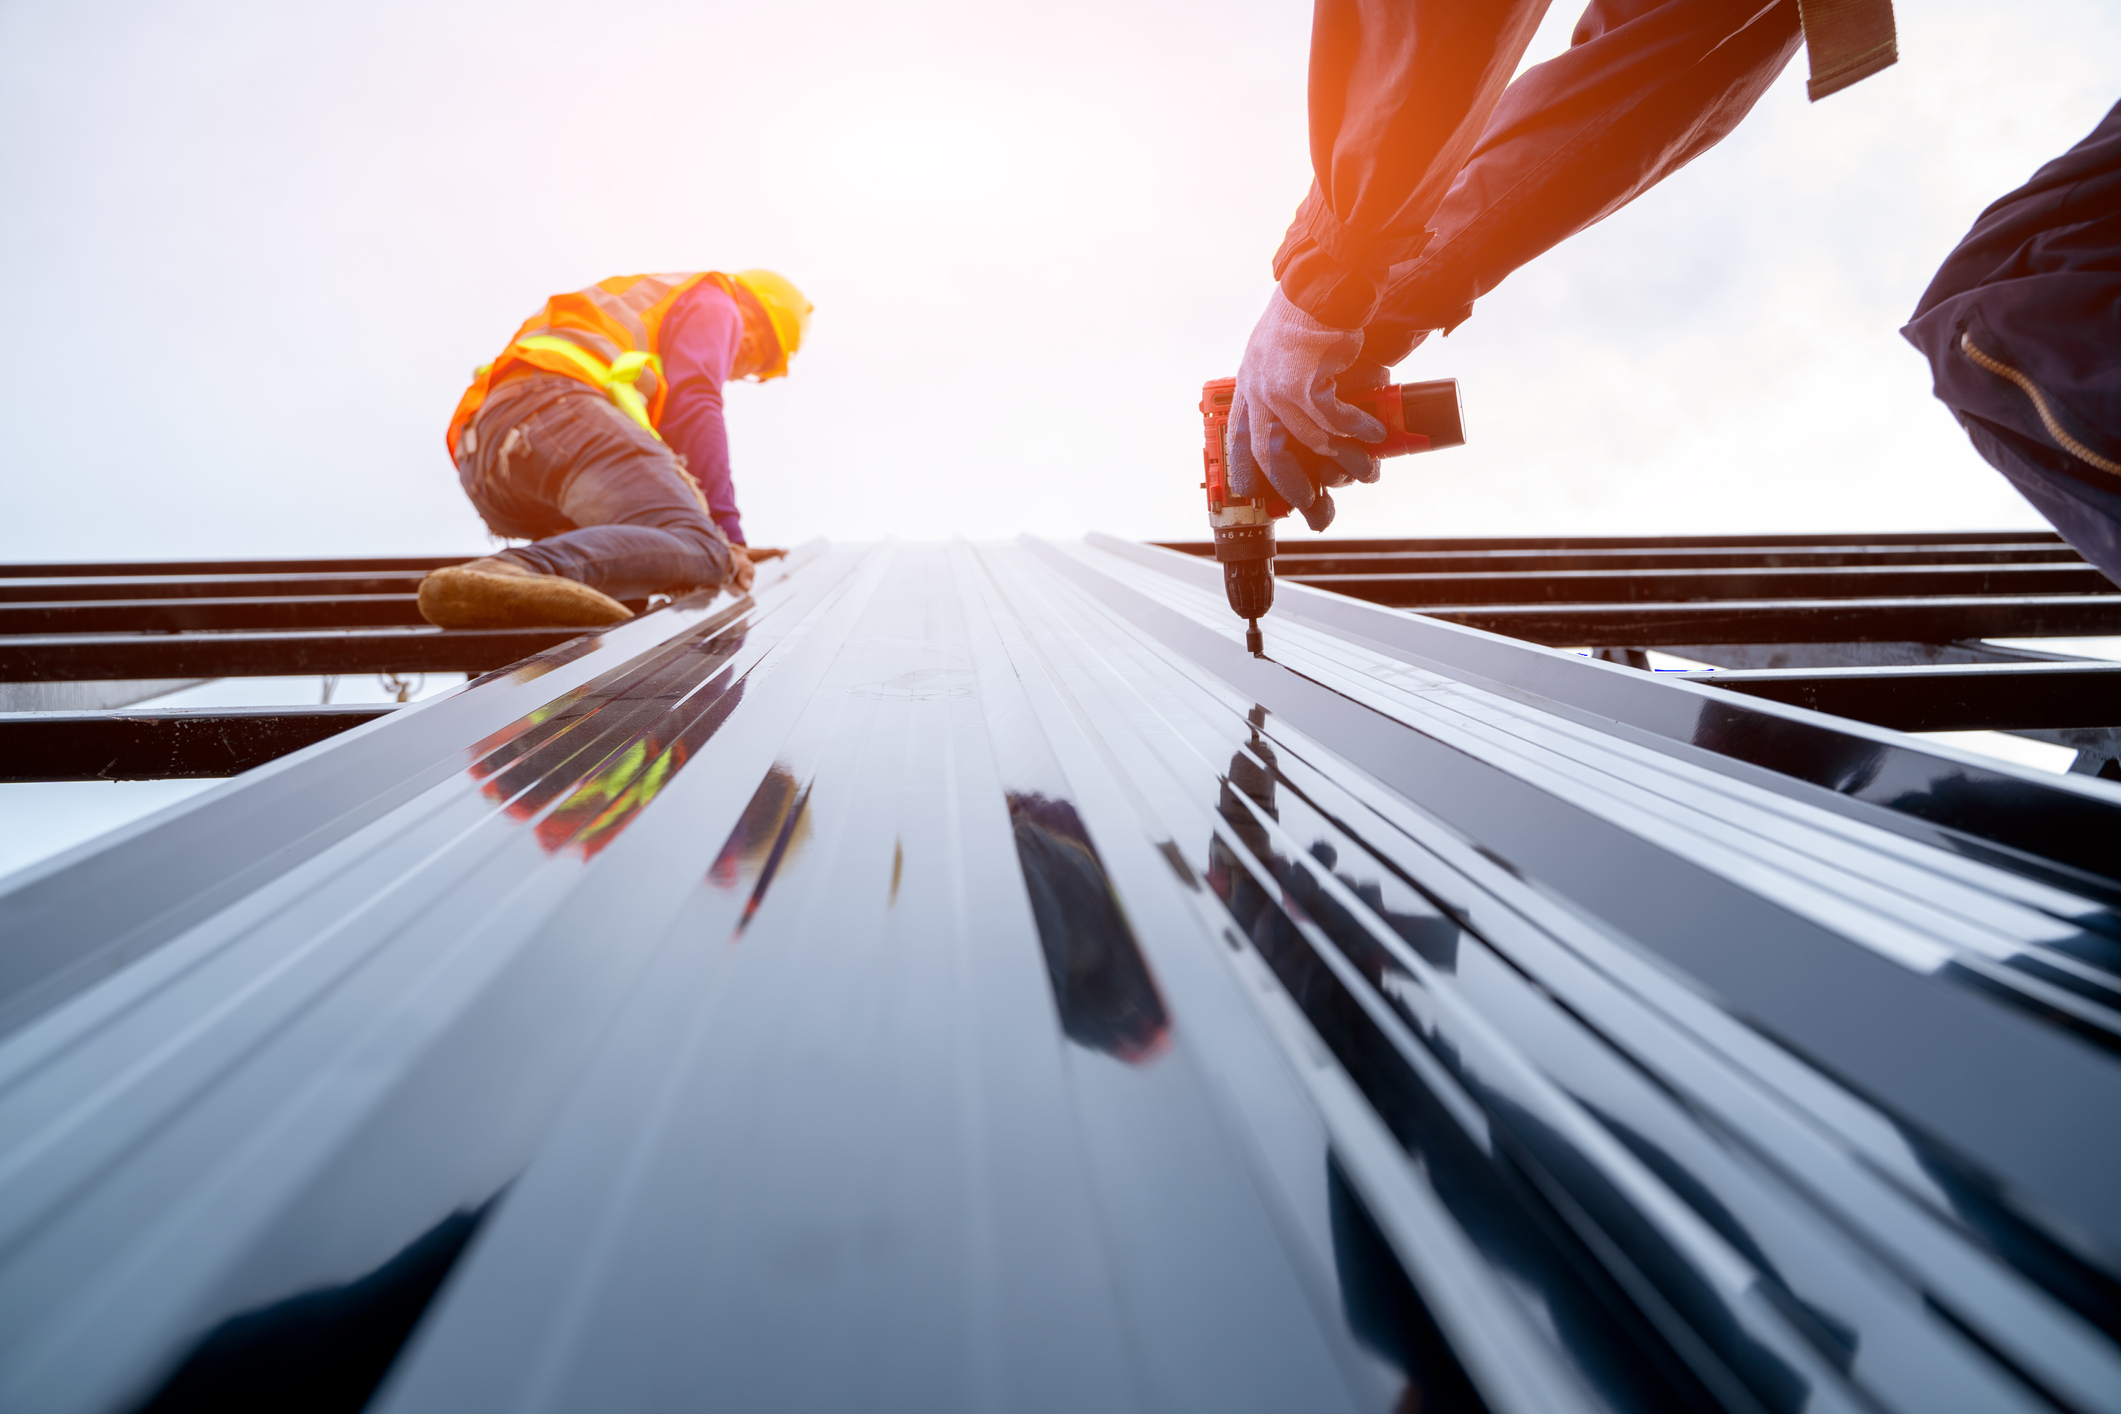 Roofing Injuries - Workers' Comp in FL